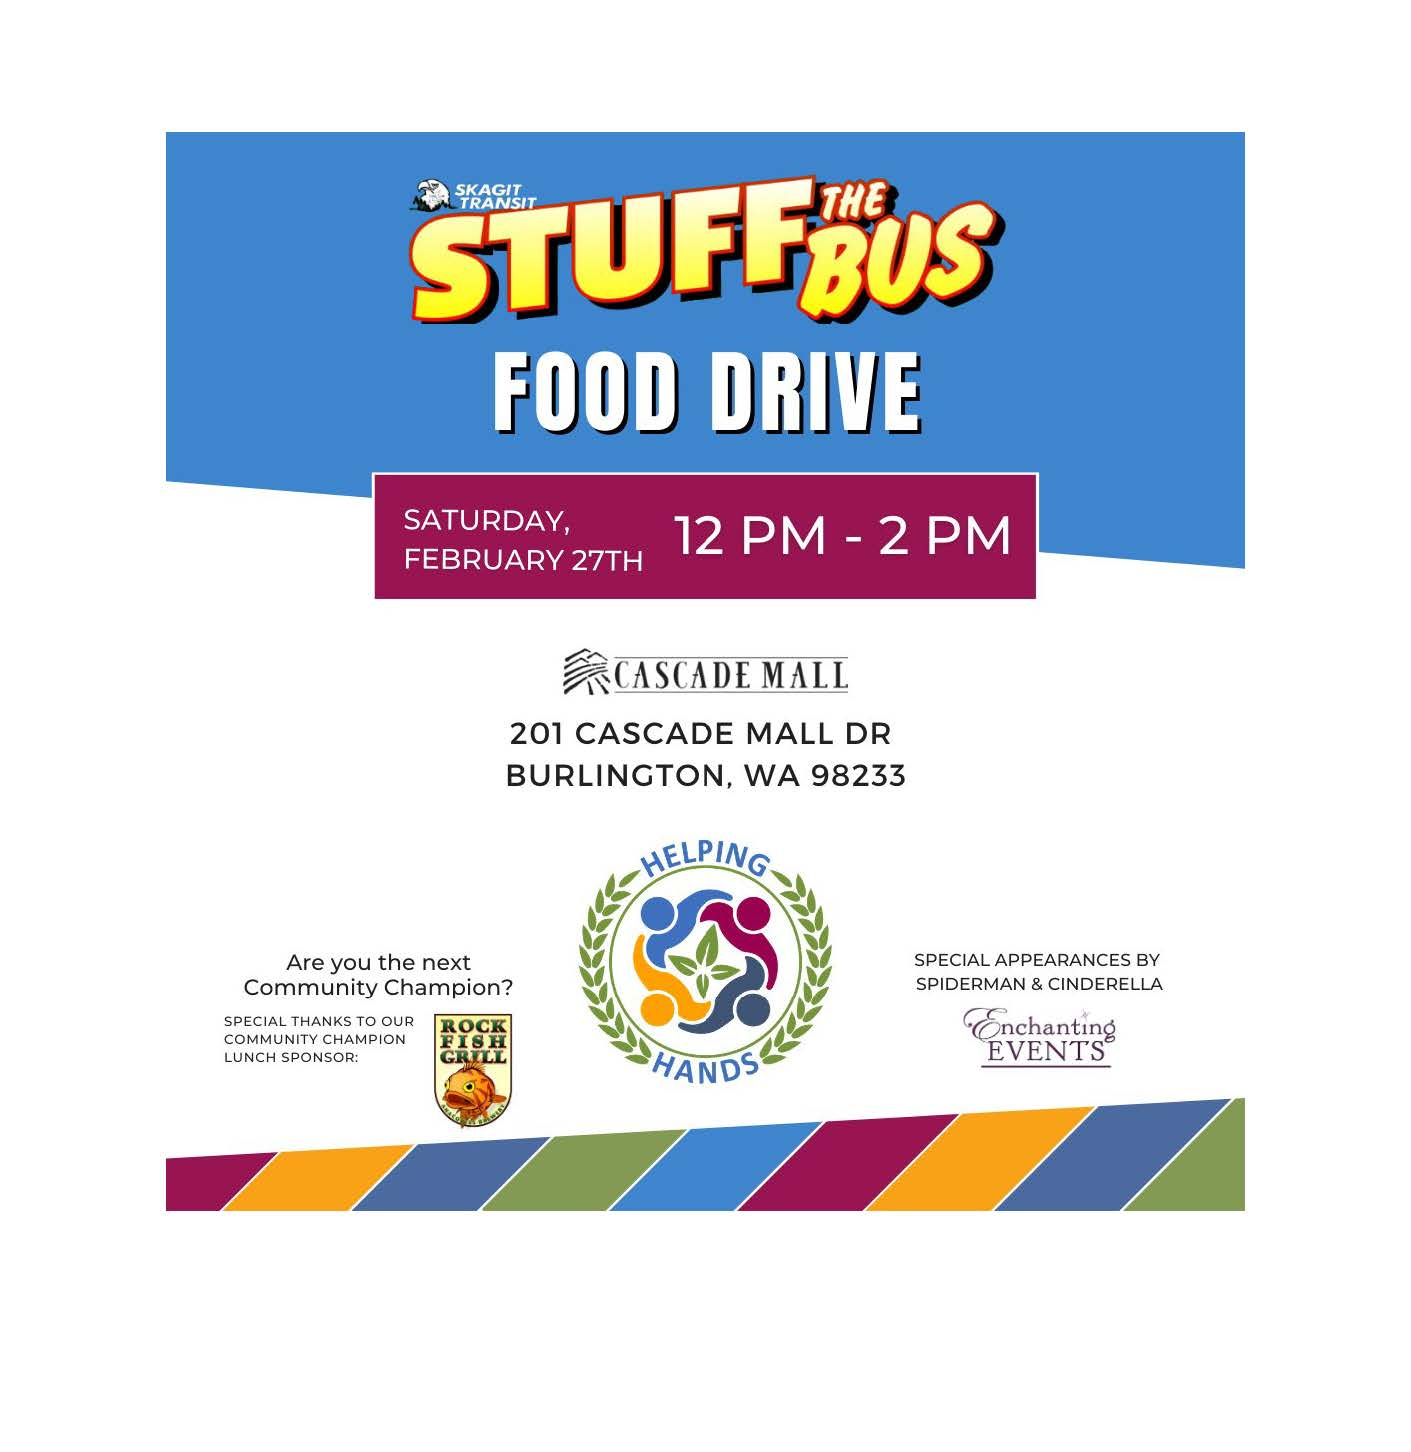 Helping Hands Stuff the Bus Food Drive social notice